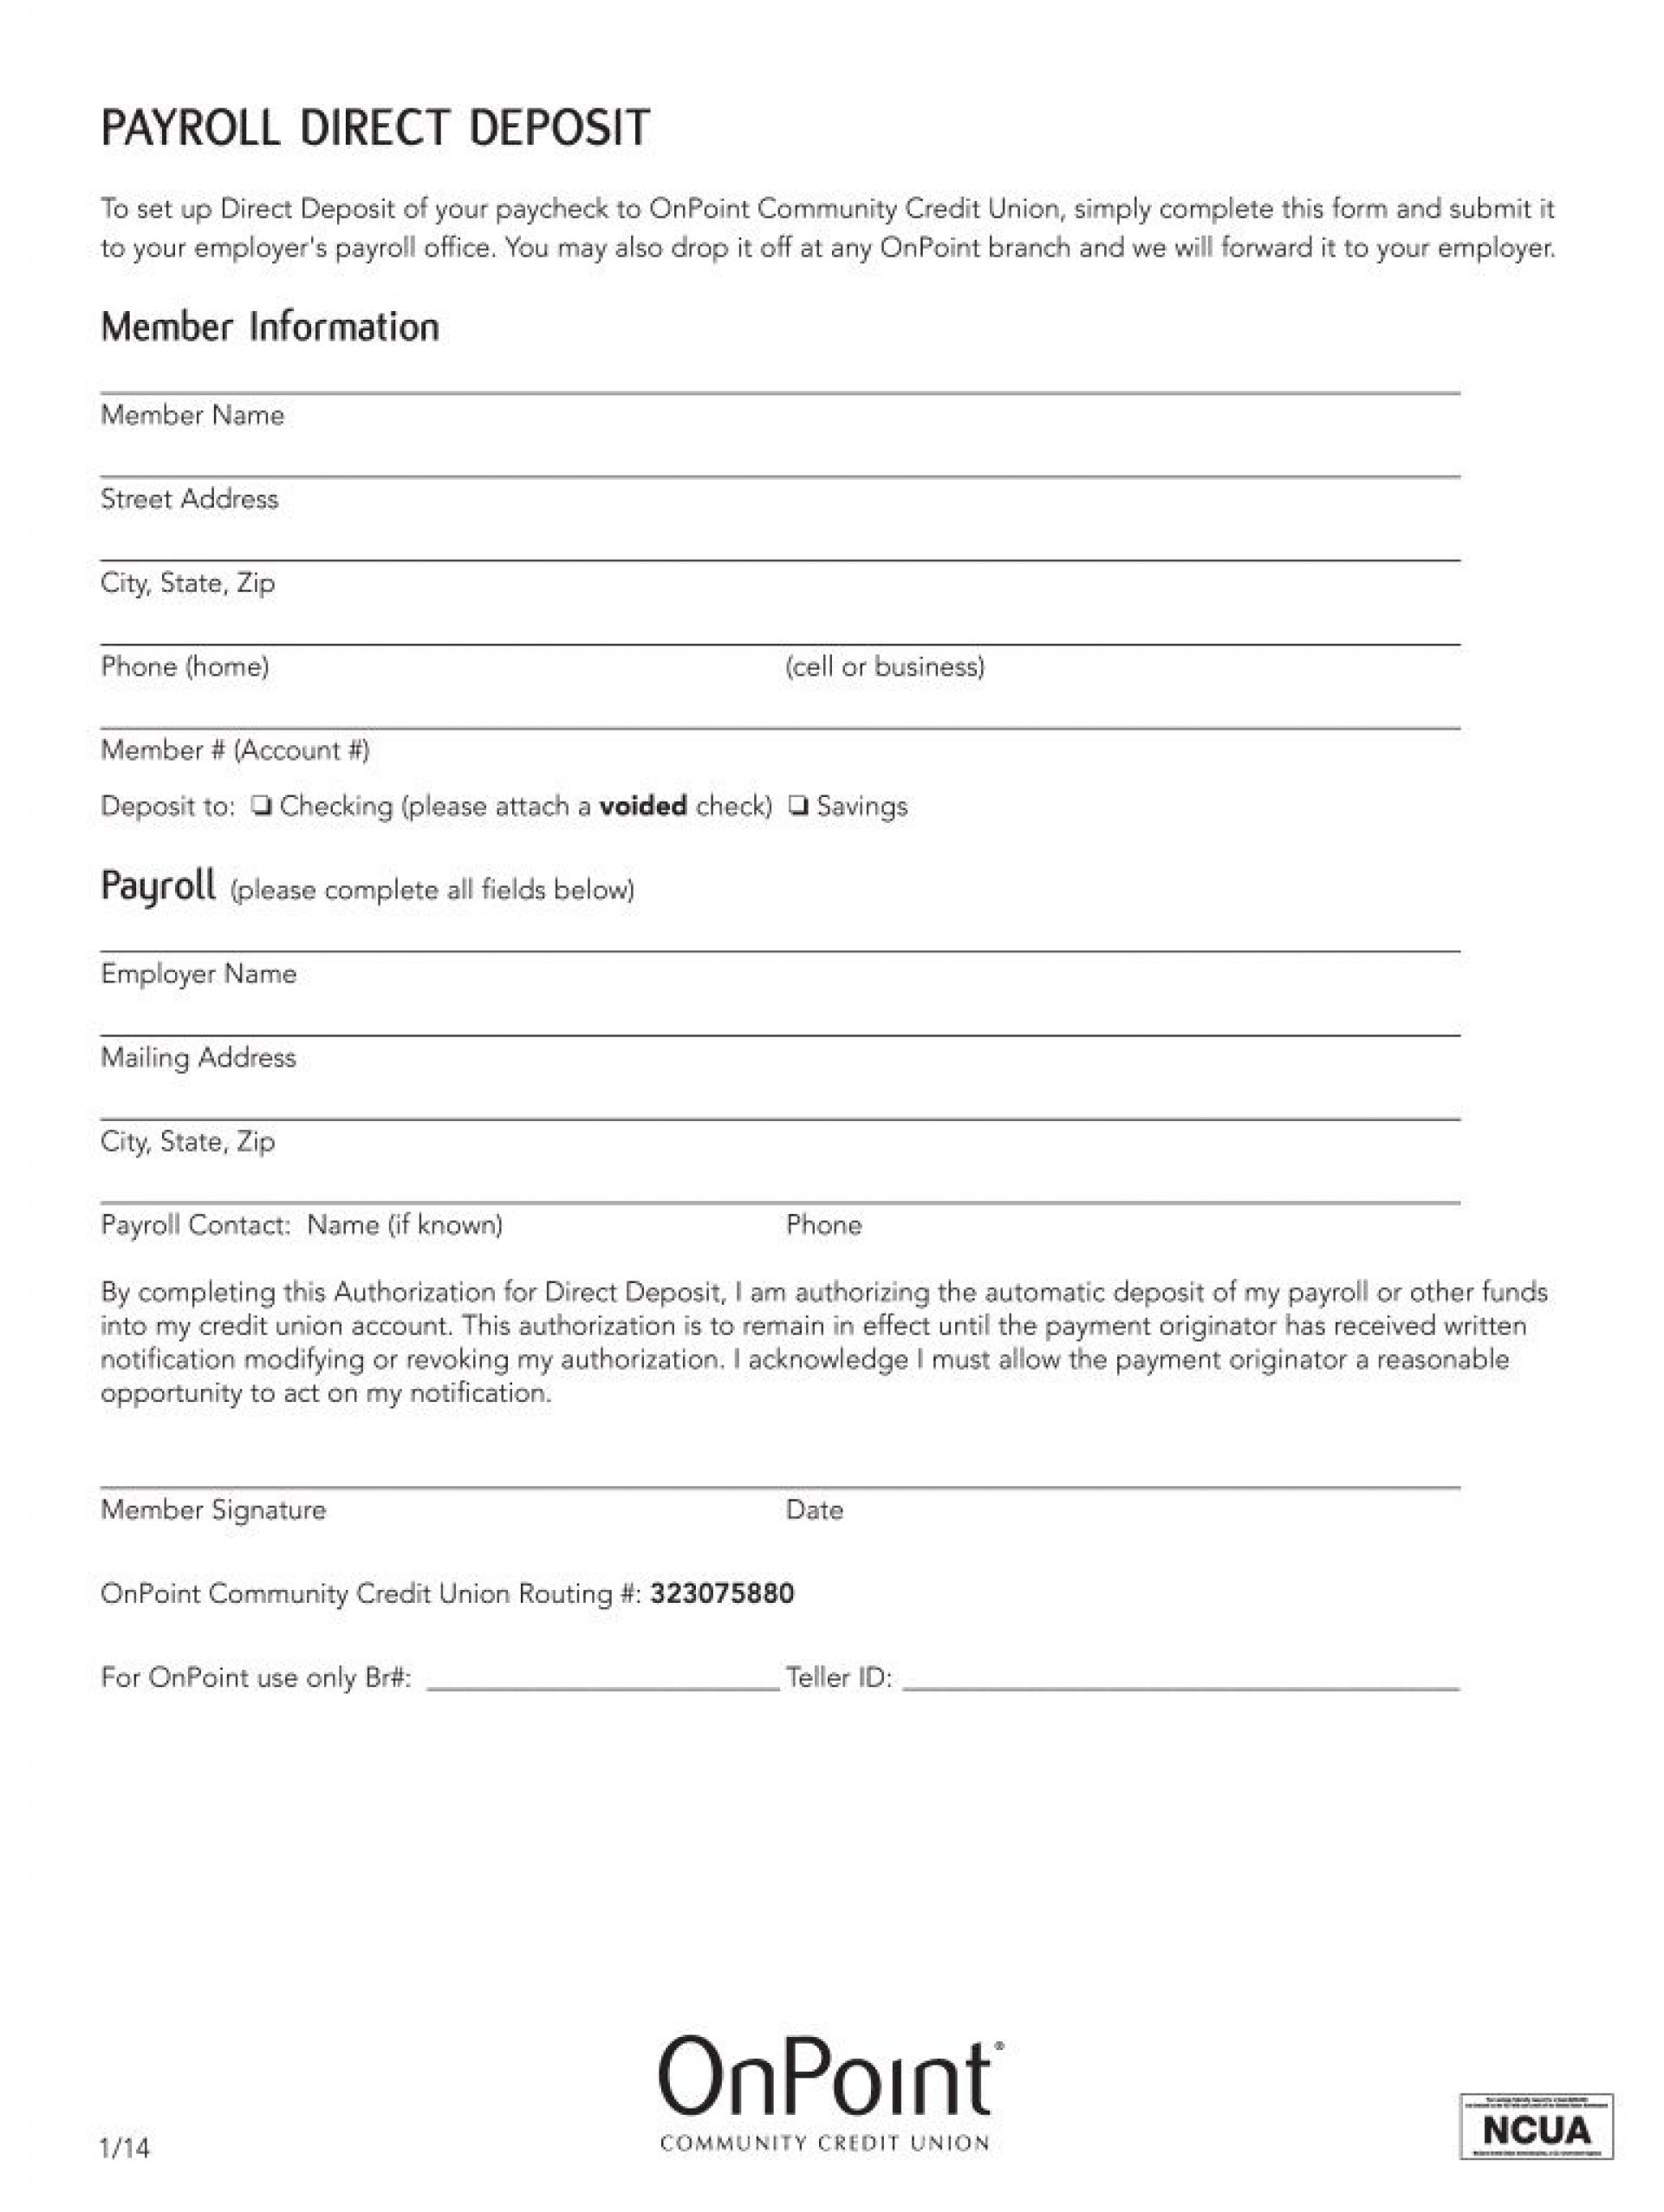 007 Amazing Direct Deposit Form Template Photo  Multiple Account Ach Authorization1920